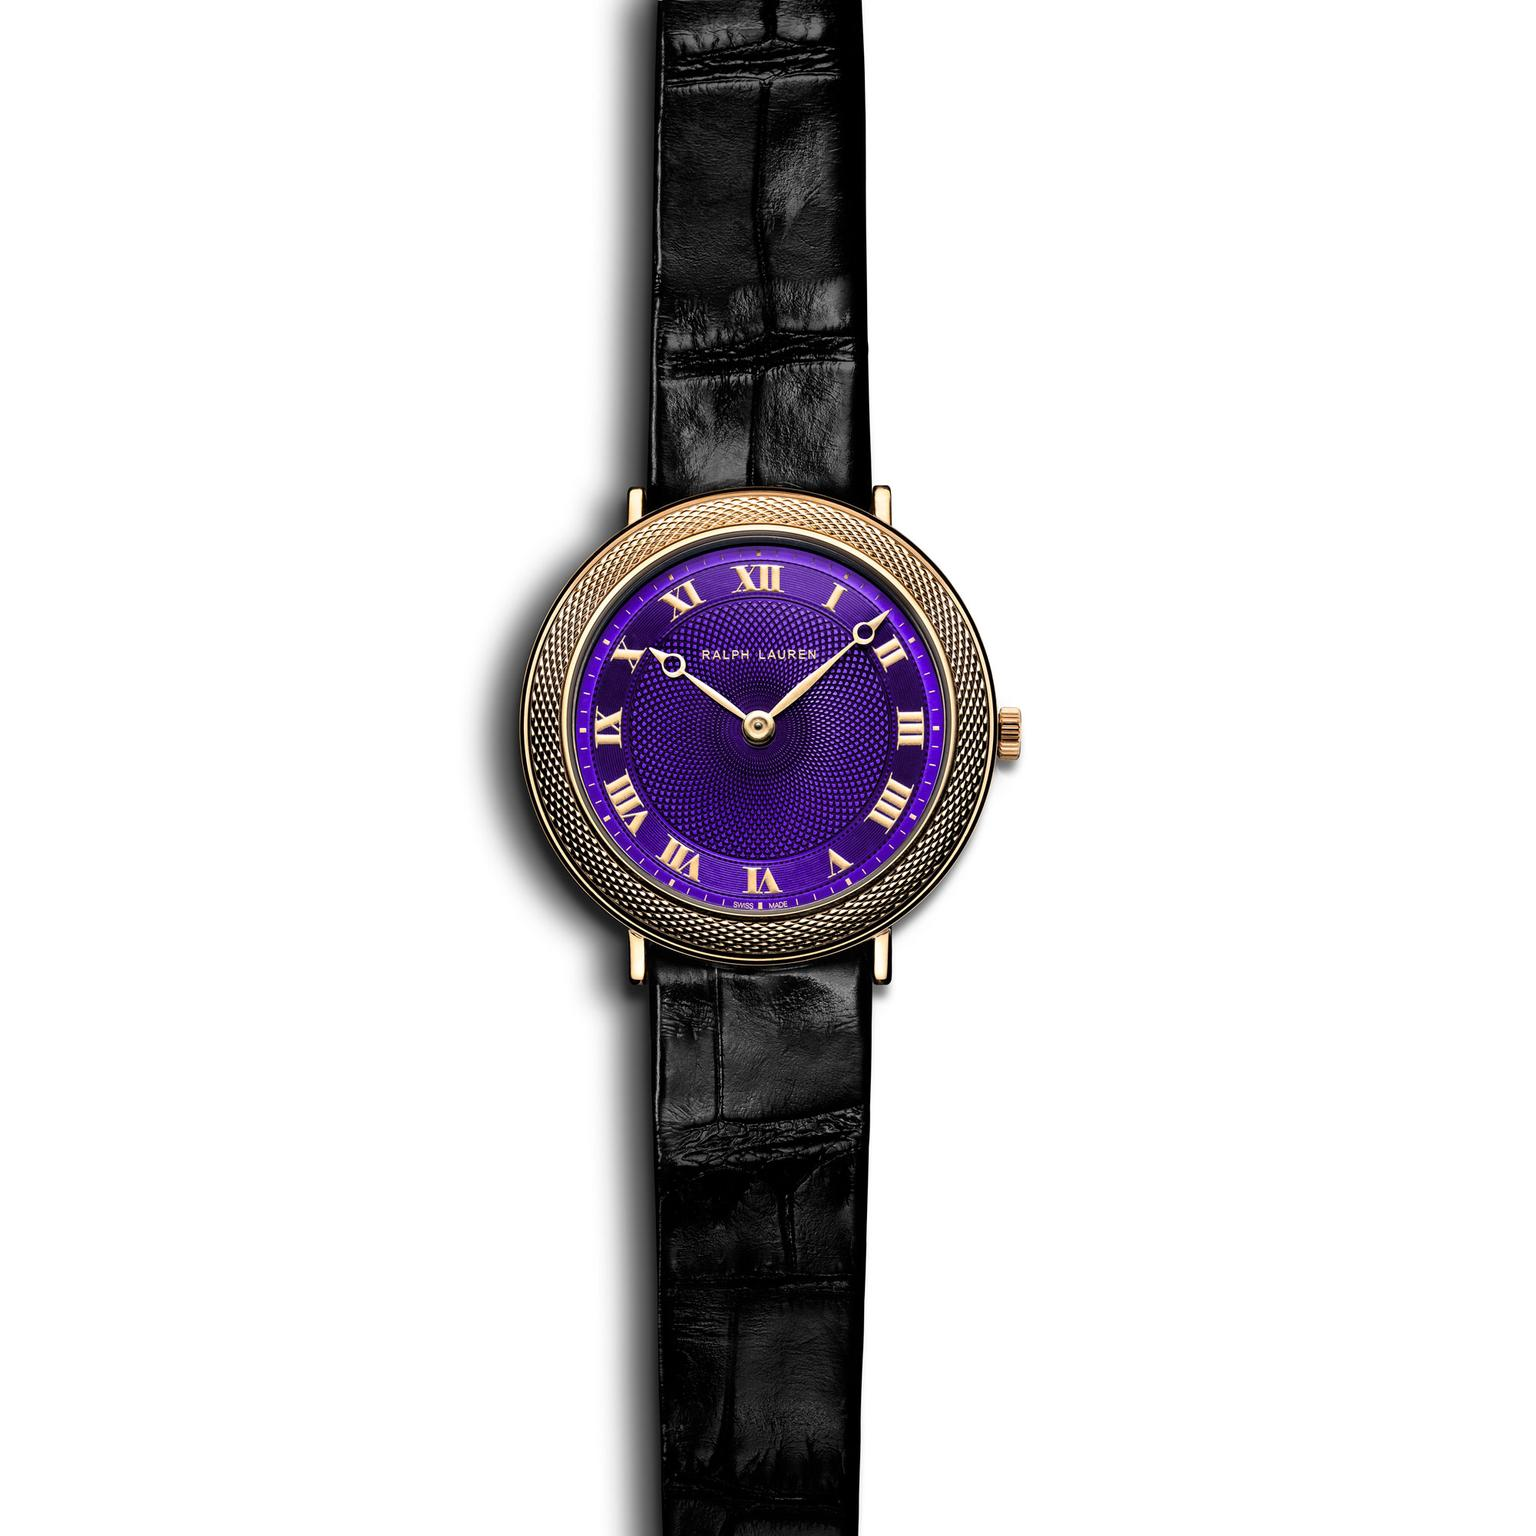 Ralph Lauren 32mm slim classic watch purple dial